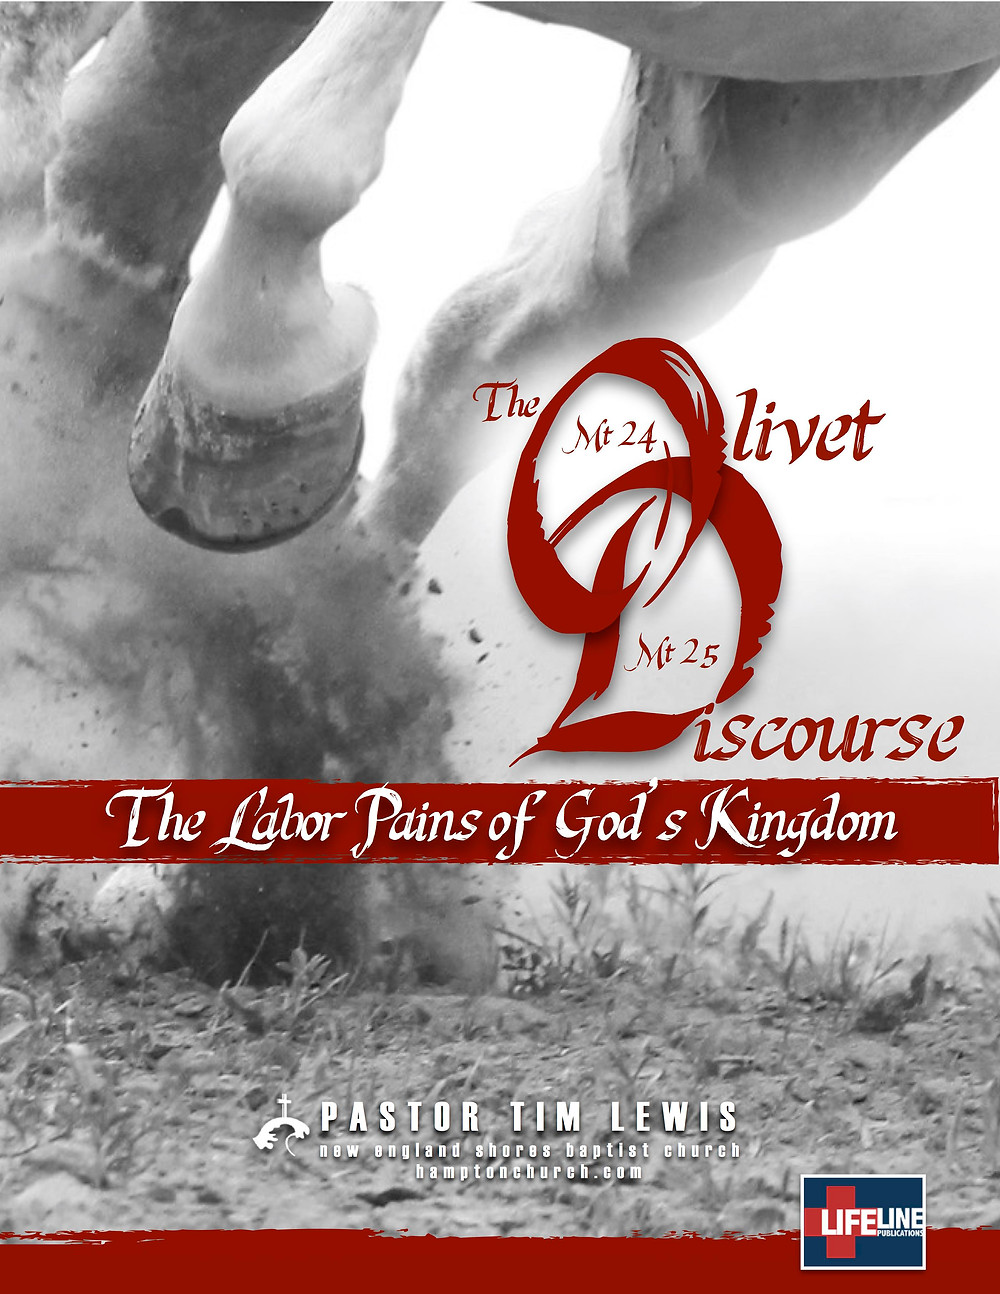 Olivet Discourse Hampton church NH